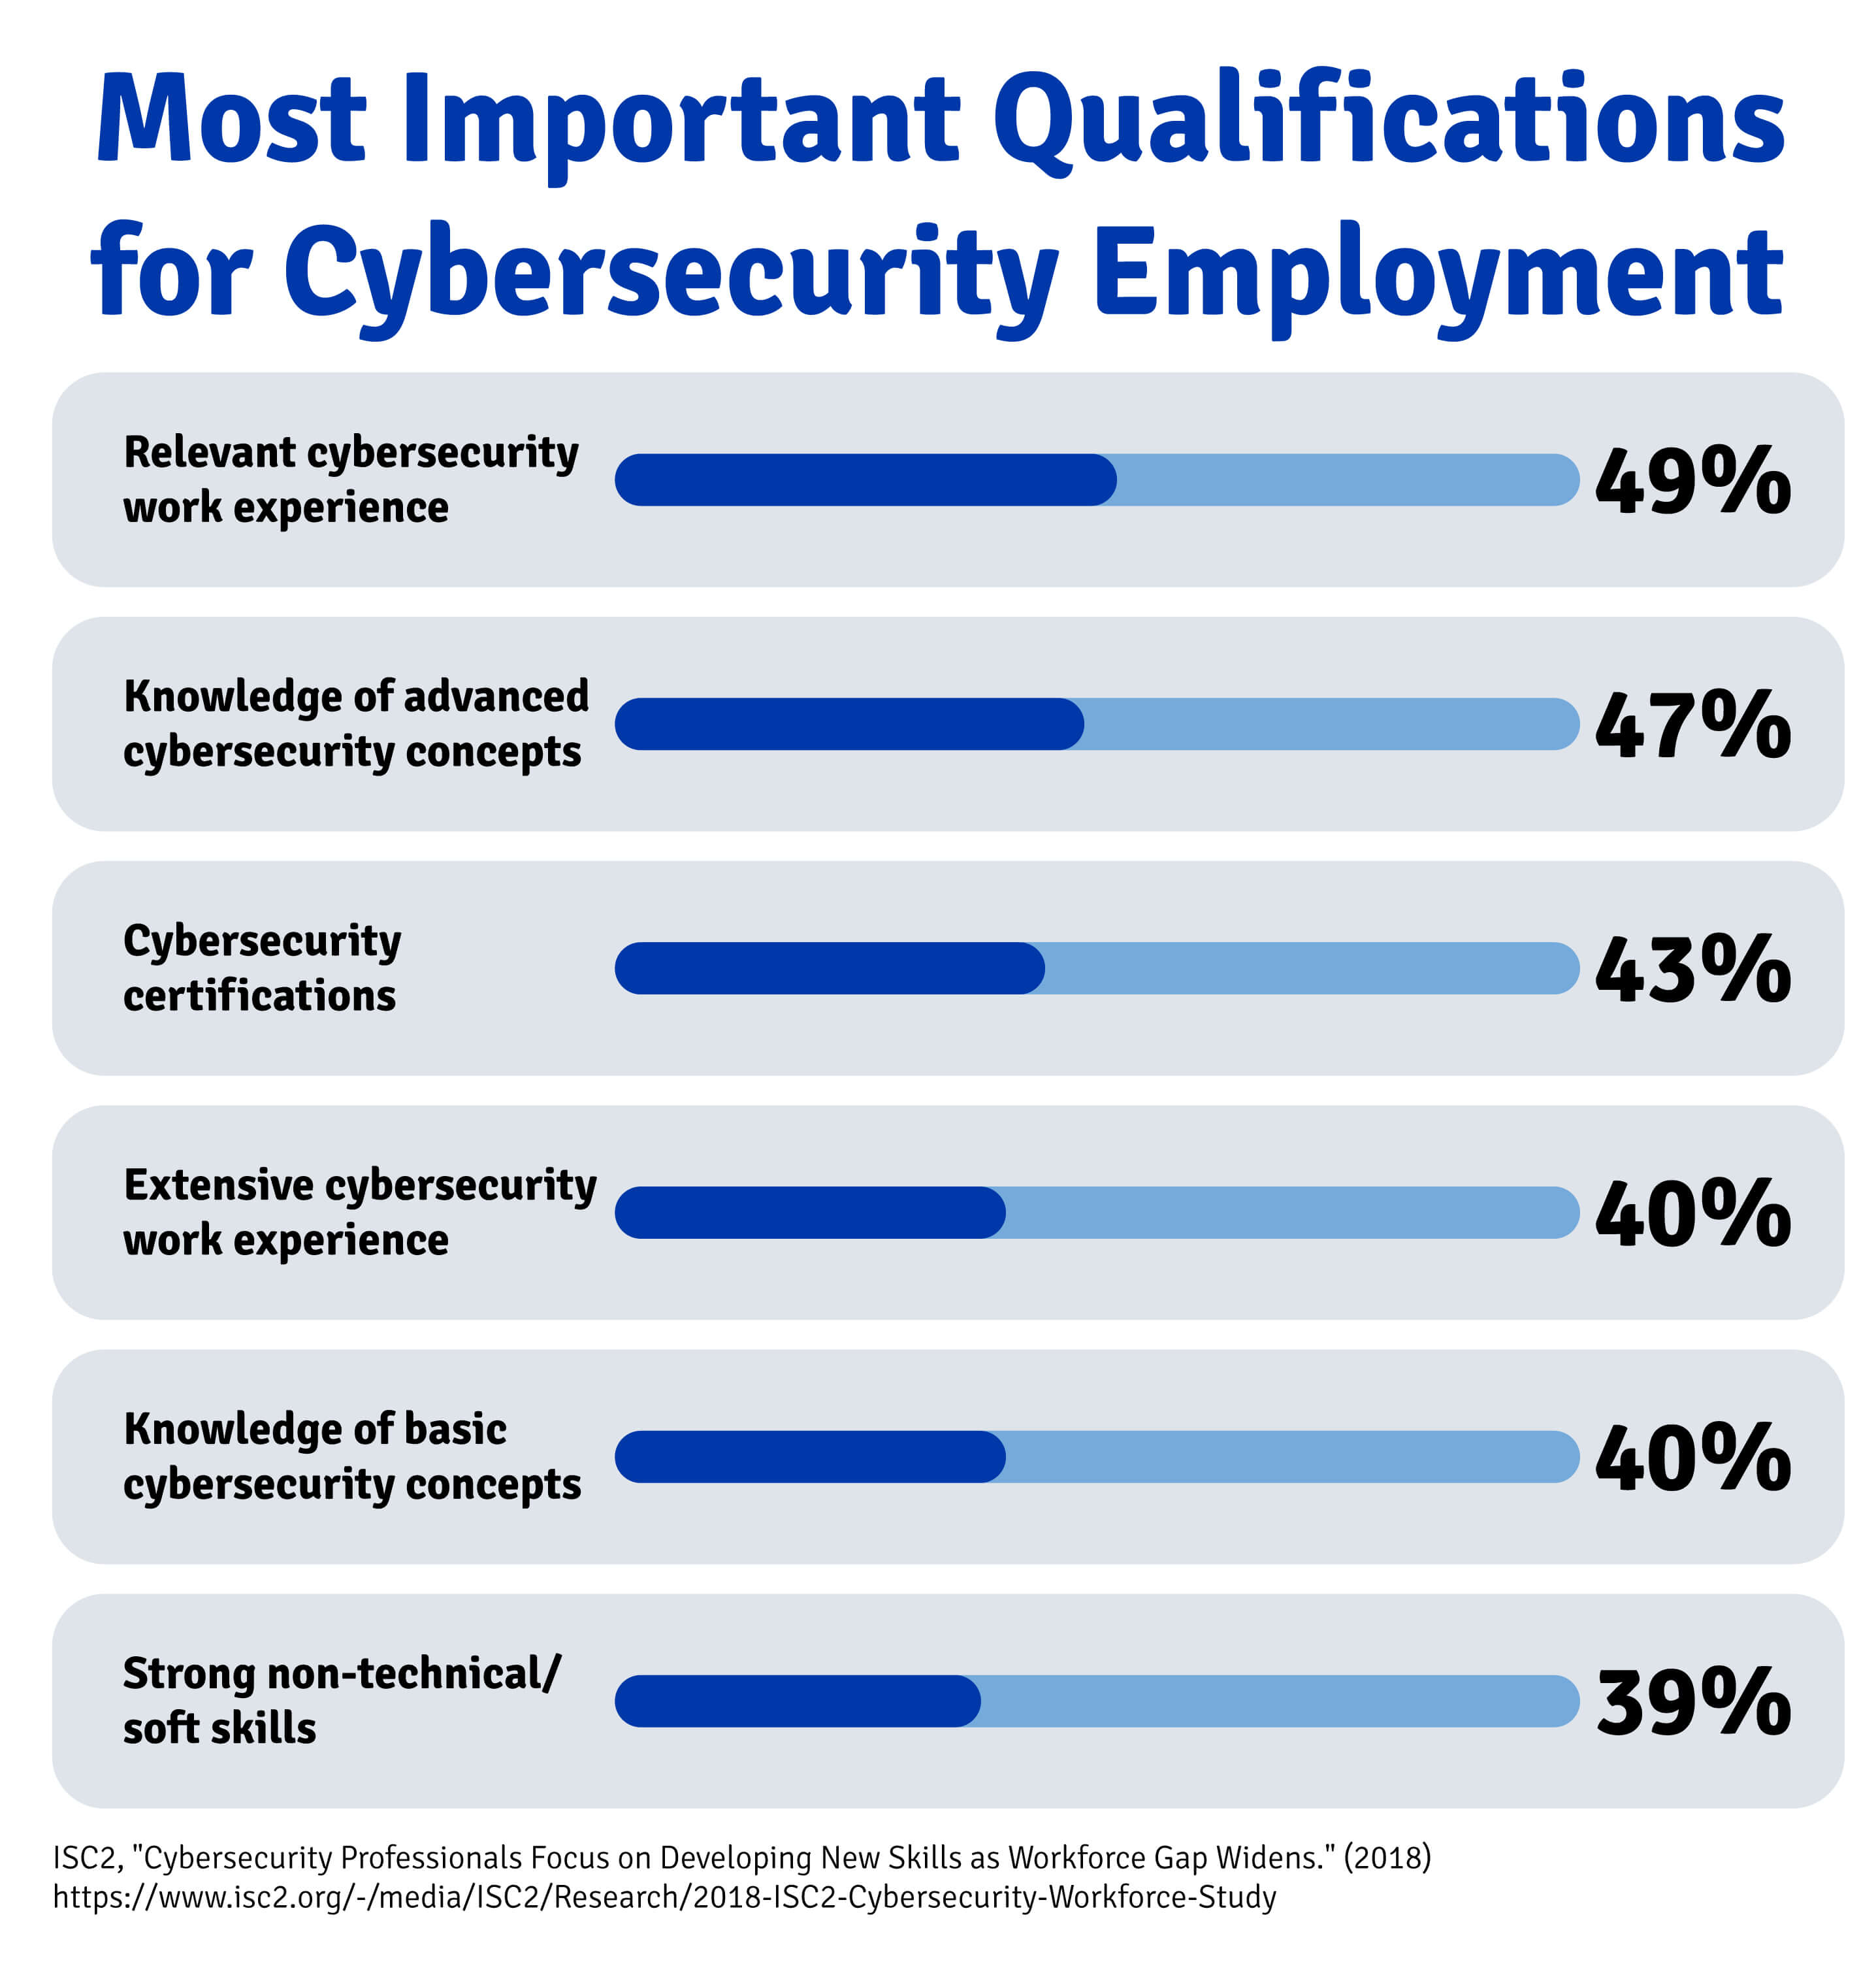 The most important qualifications for cybersecurity employment